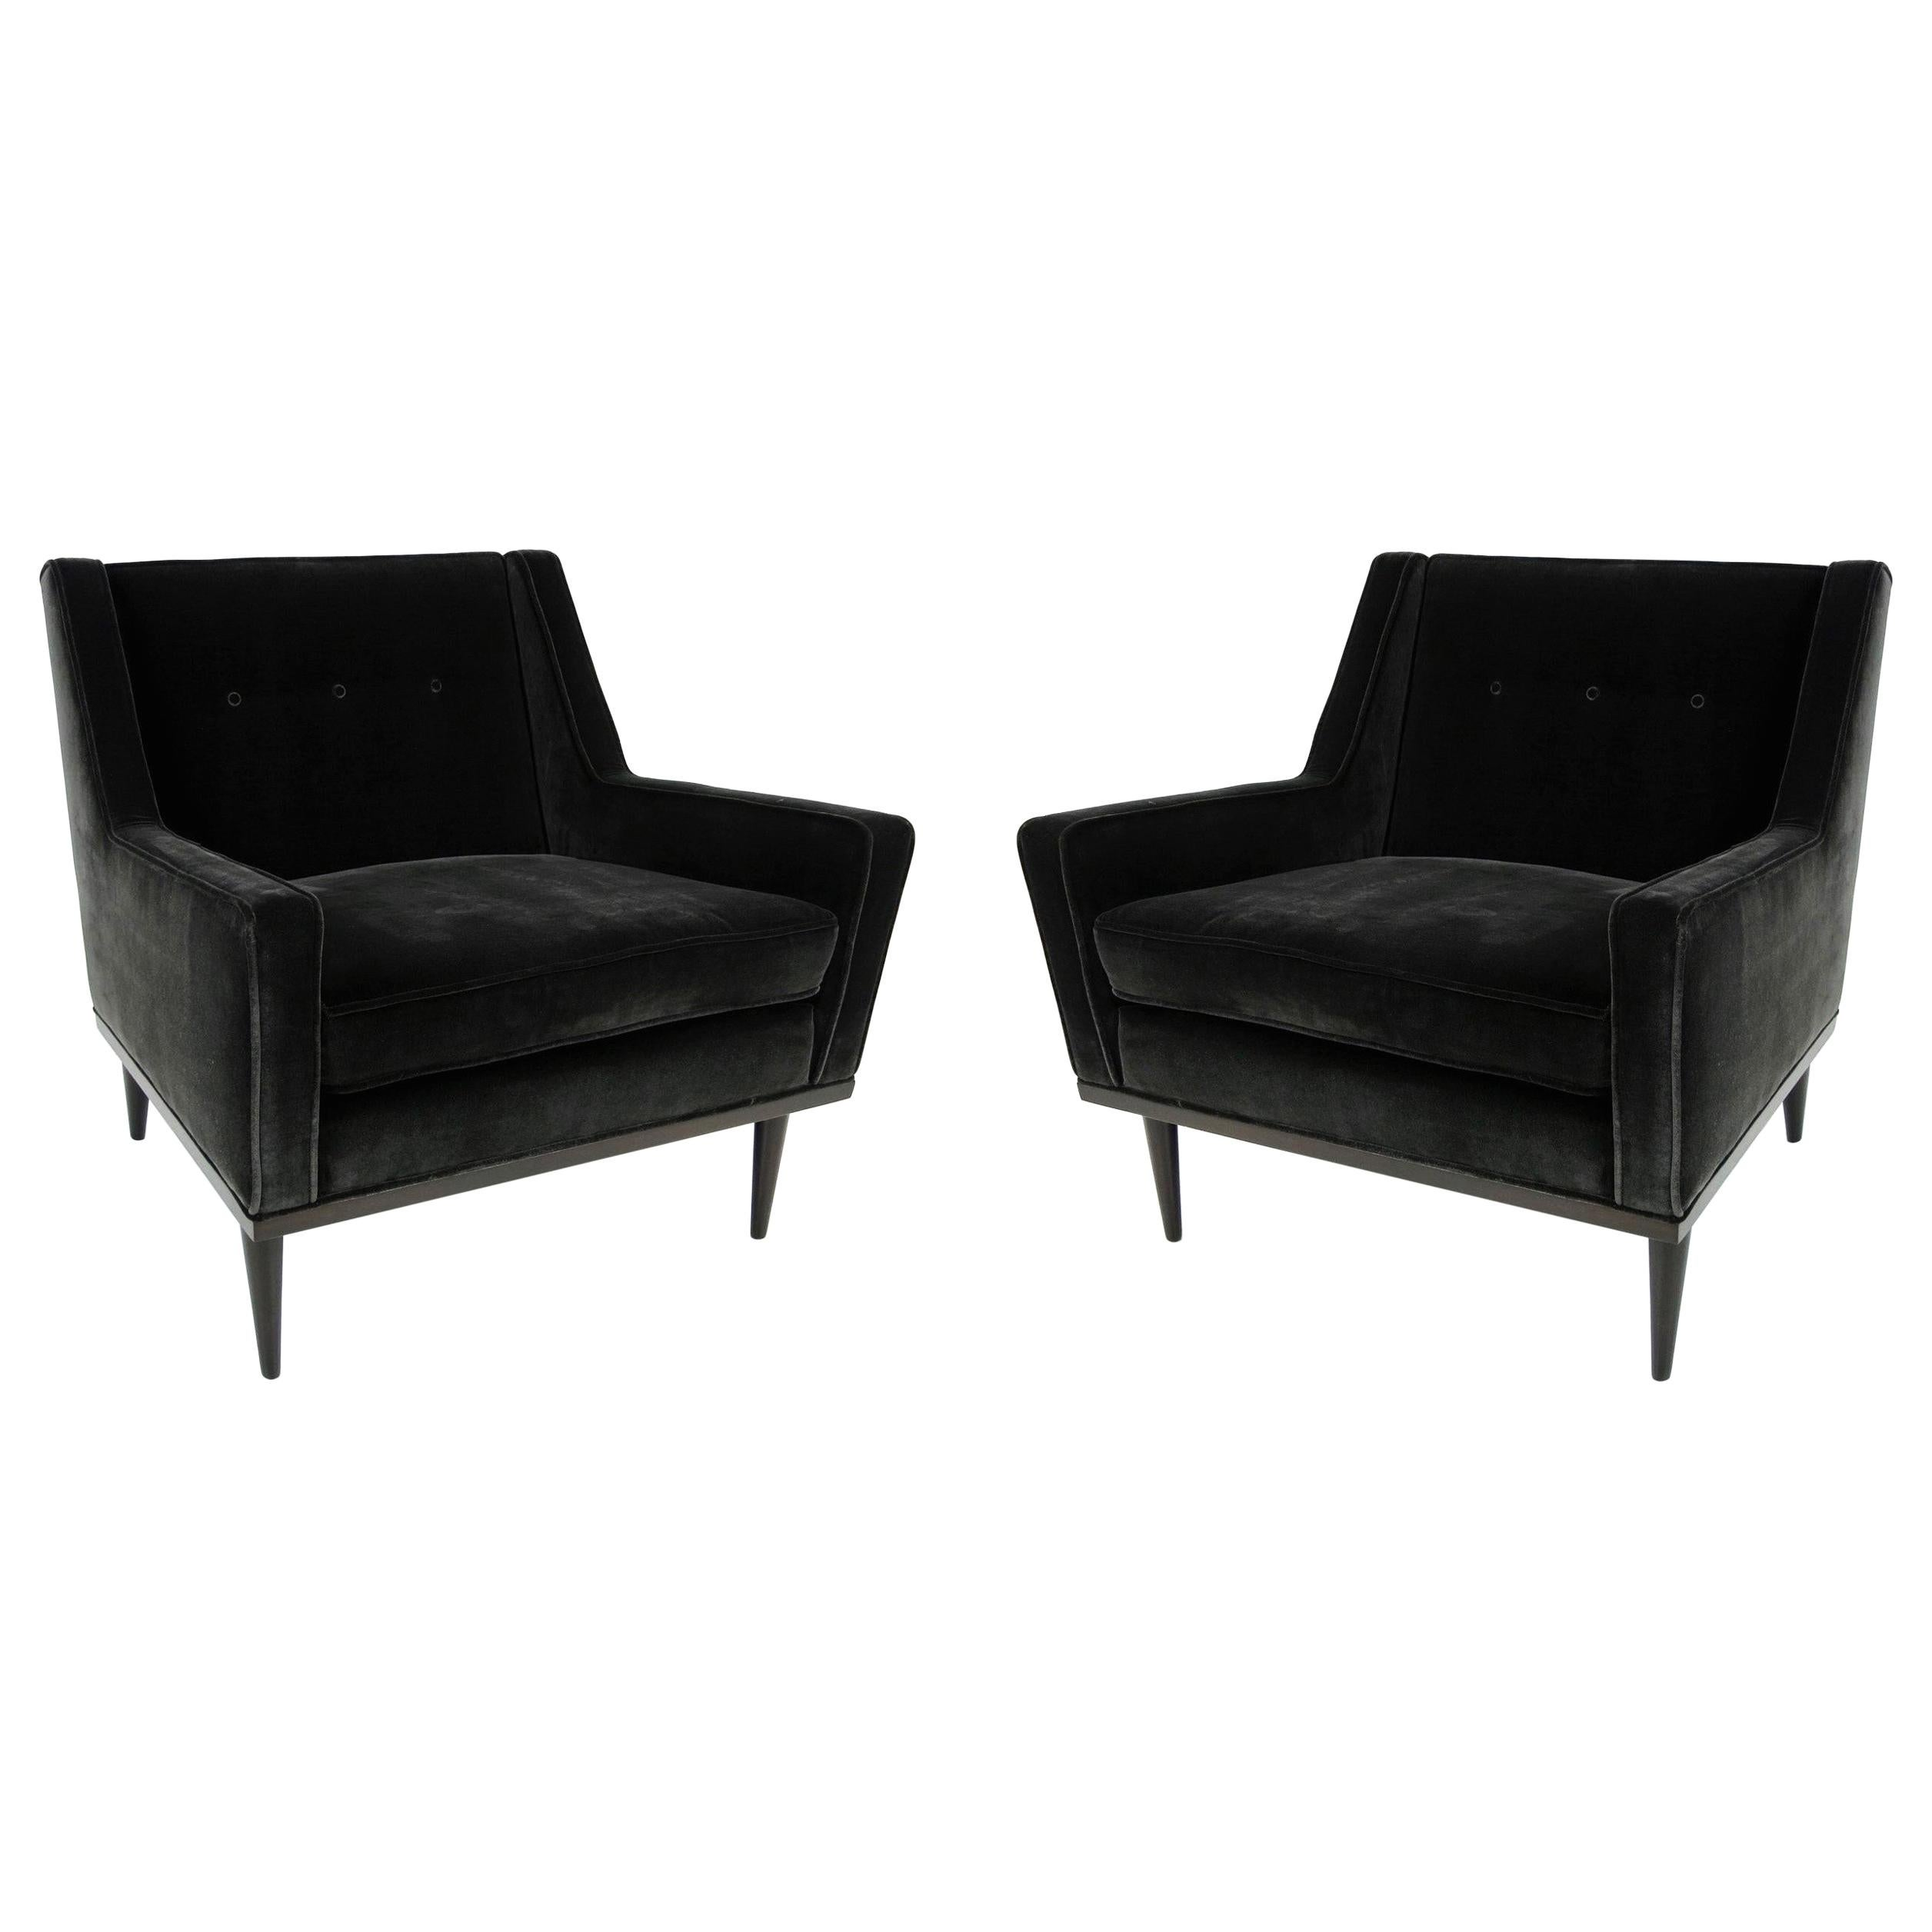 Pair of Black Milo Baughman for James Inc. Lounge Chairs